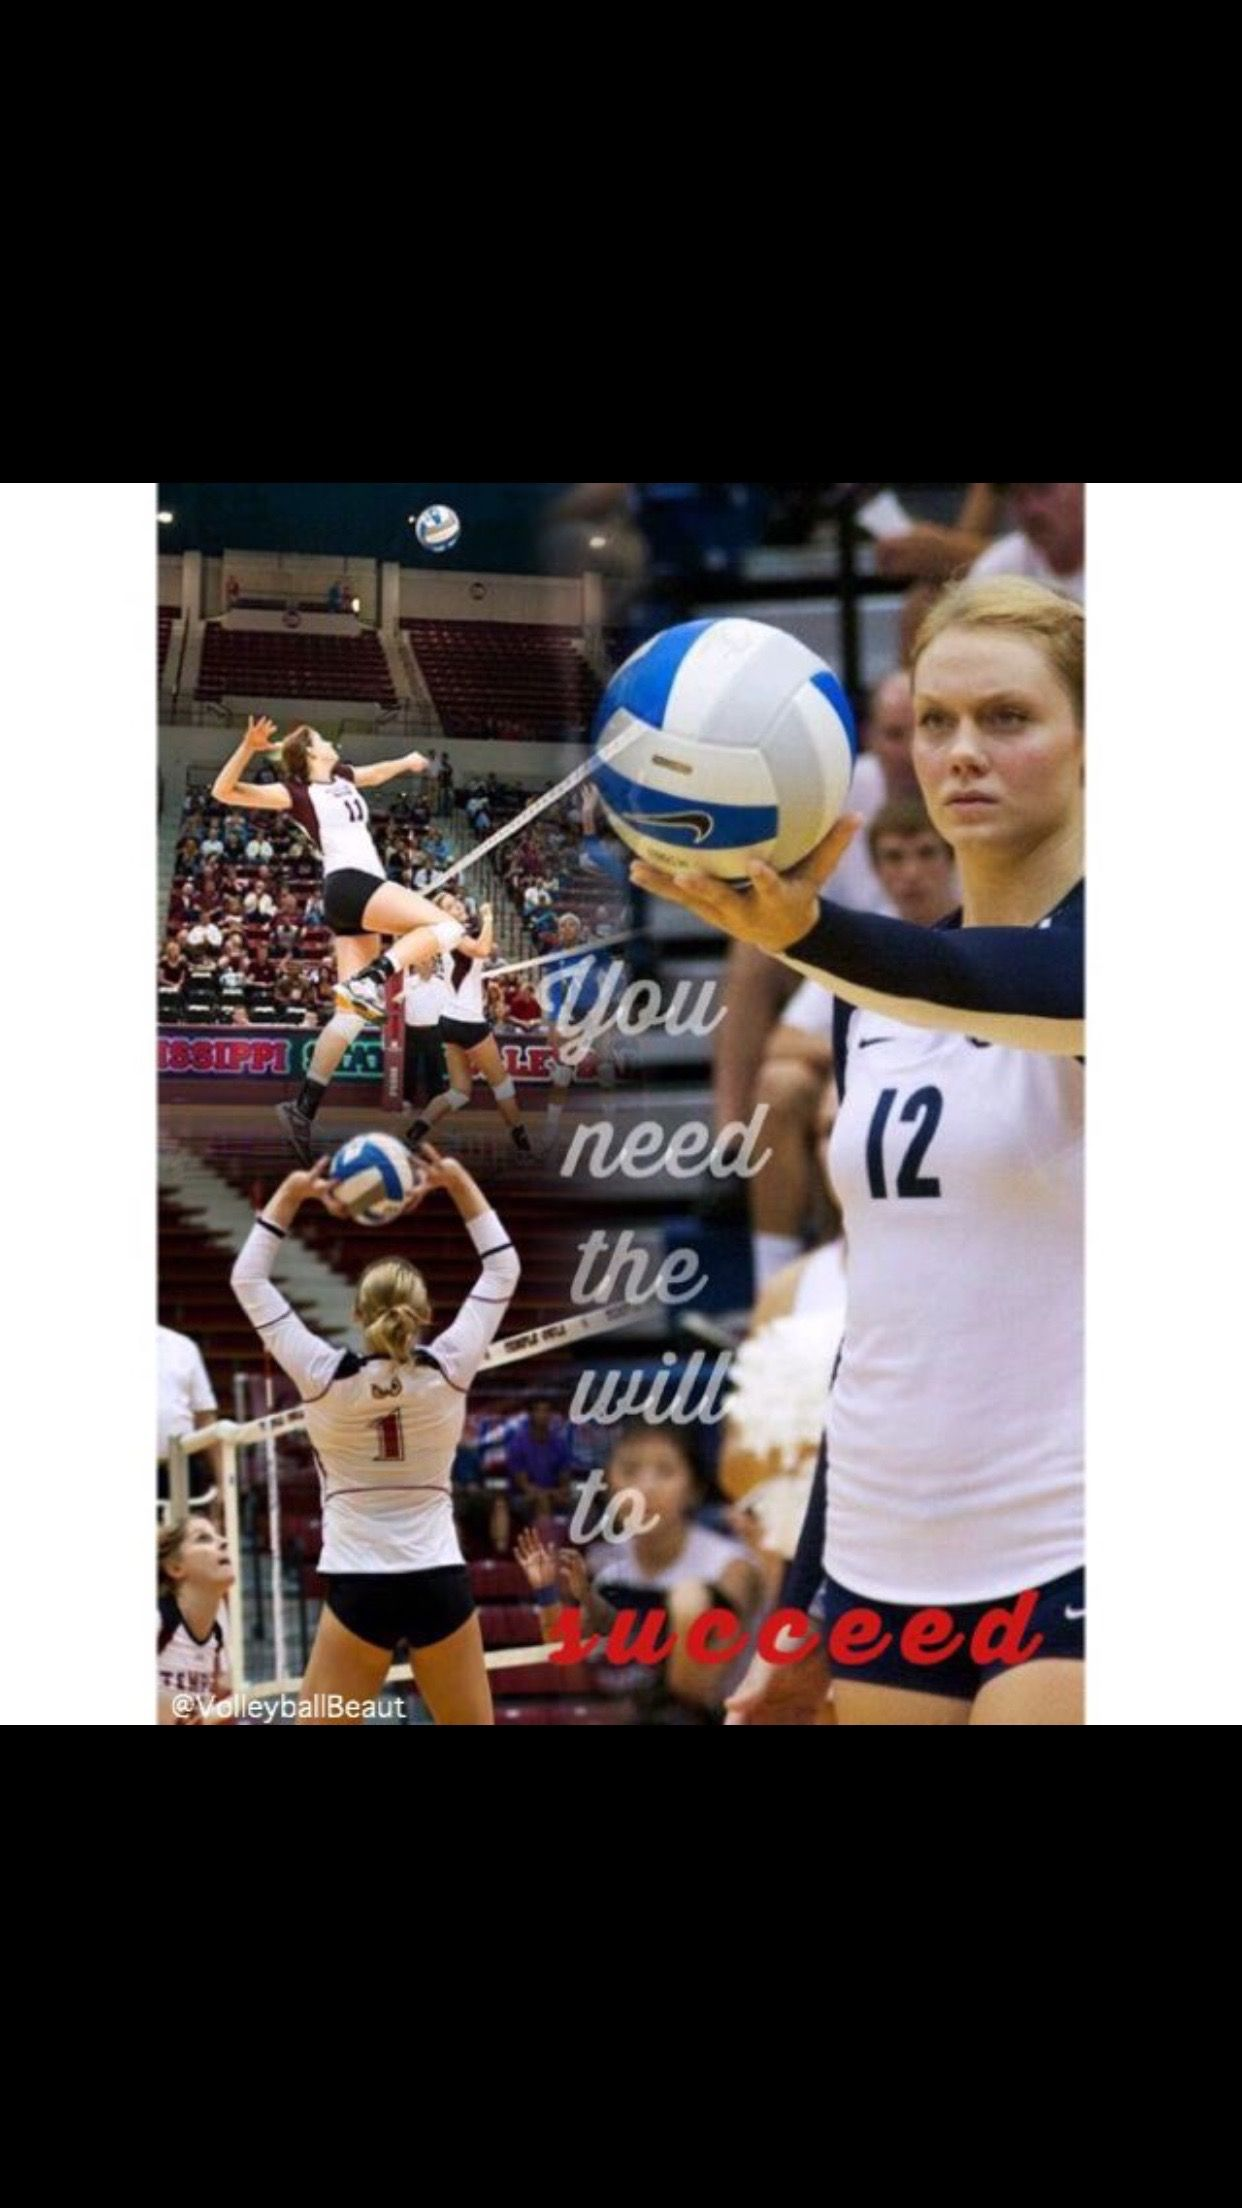 This Game Introduced Me To Passion And Is Still The Strongest I Have Experienced Volleyball Volleyball Quotes Fun Sports